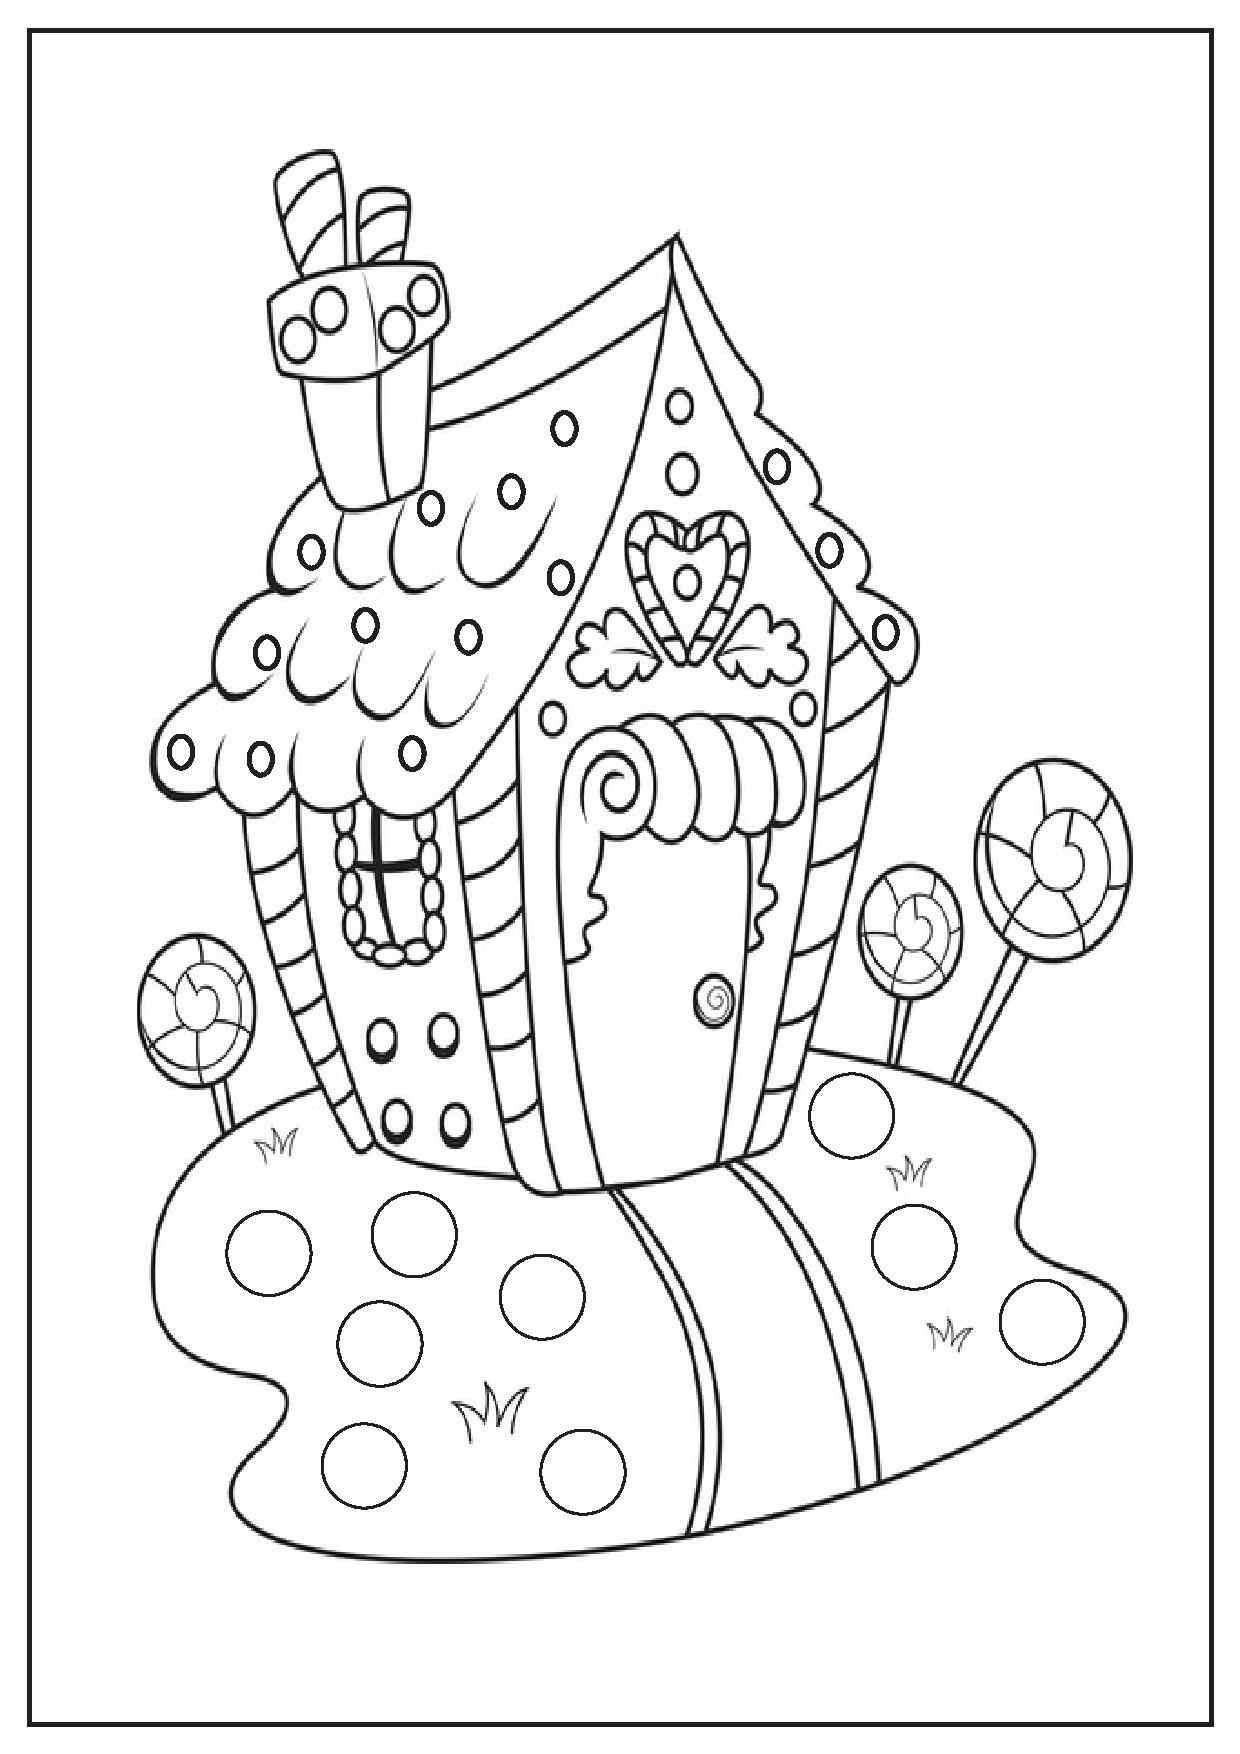 Coloring pages printable free christmas - Christmas Worksheets Christmas Coloring Pages Printables